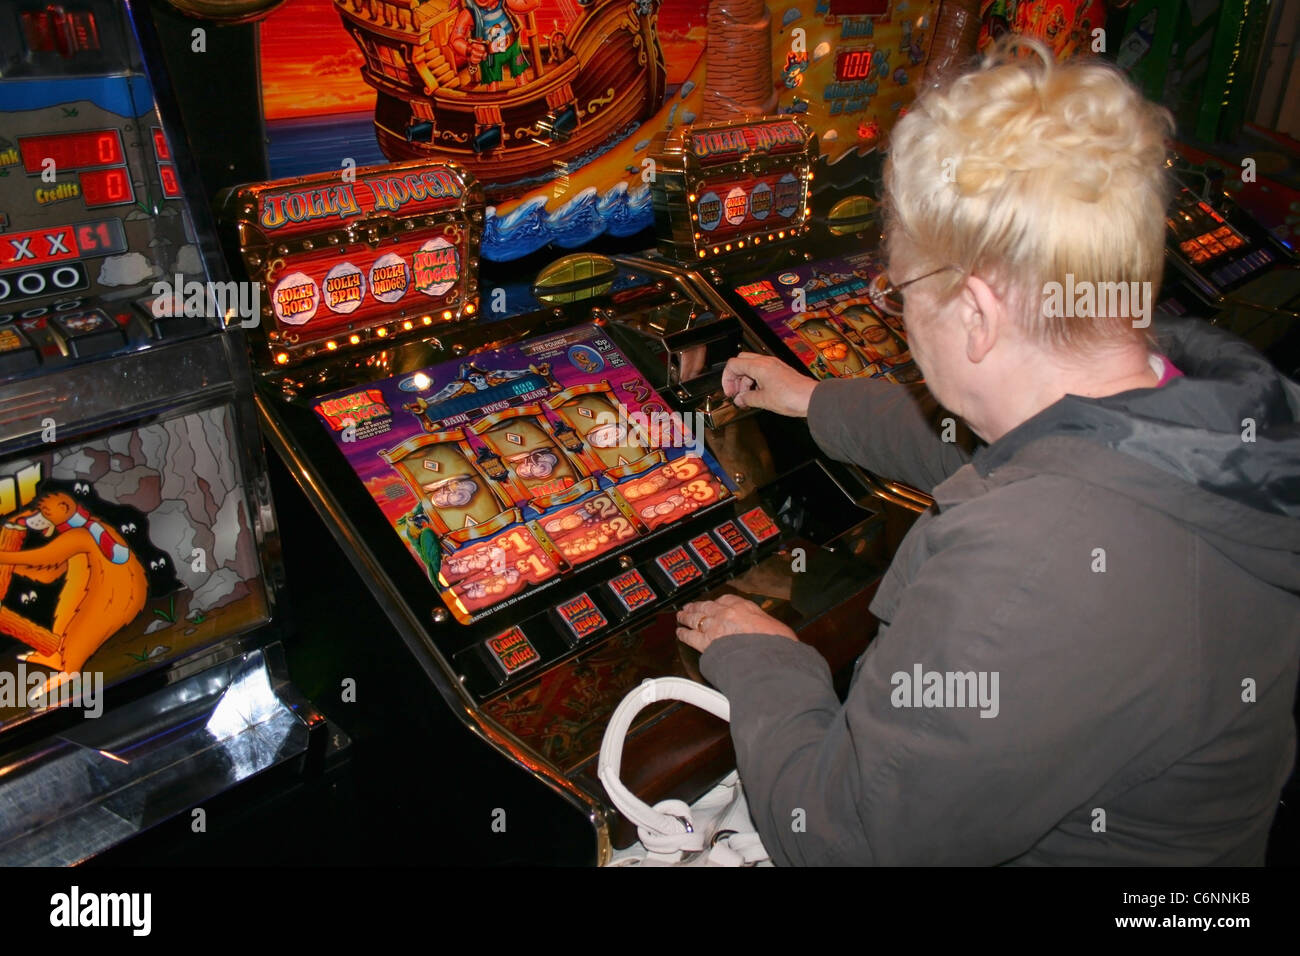 Woman playing slot machine. - Stock Image